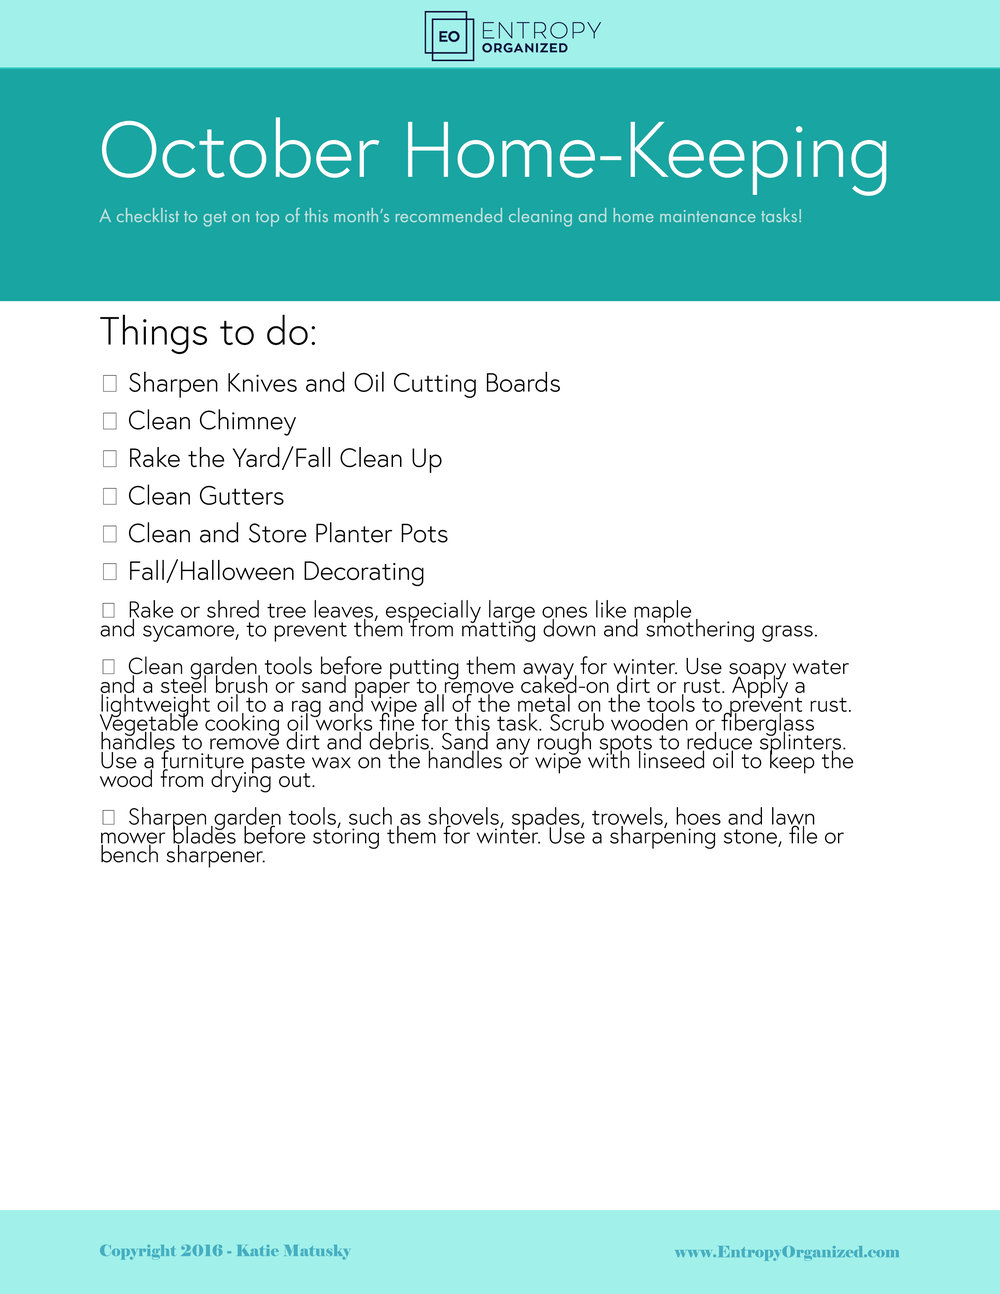 October Cleaning & Home Maintenance.jpg